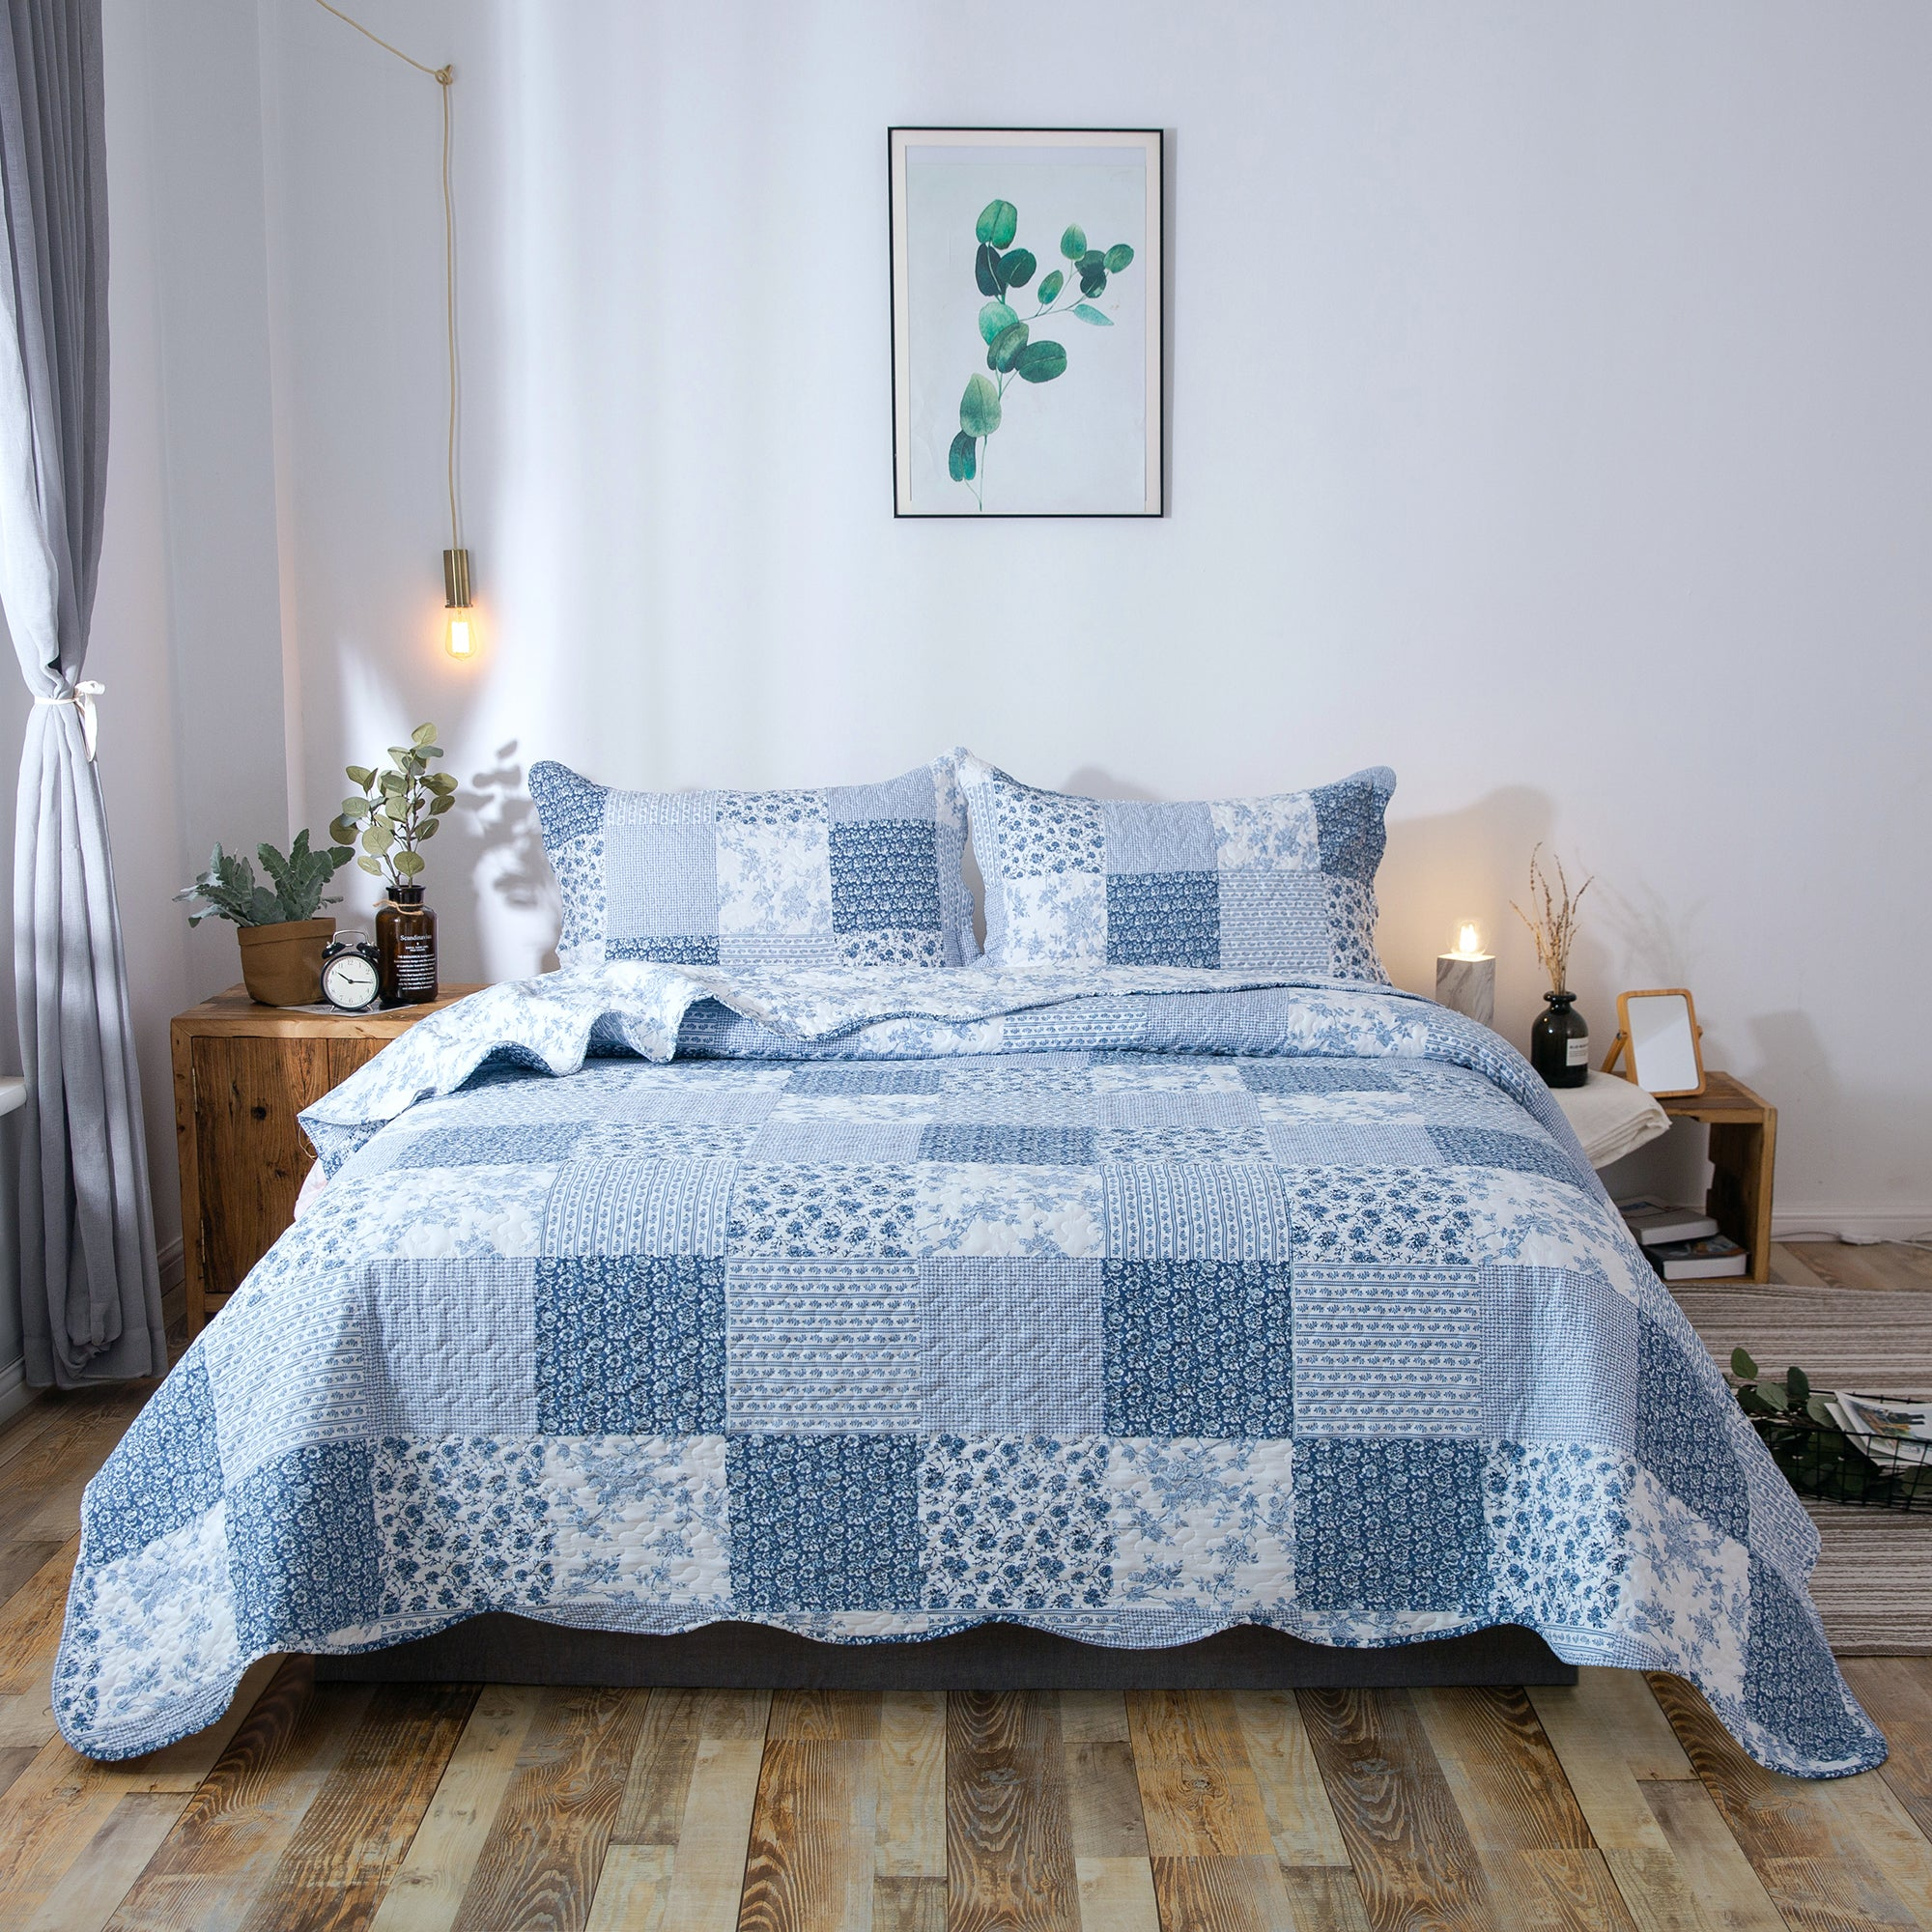 Kasentex Country-Chic Printed Pre-washed Quilt Set. Microfiber Fabric Traditional Multi-Blue